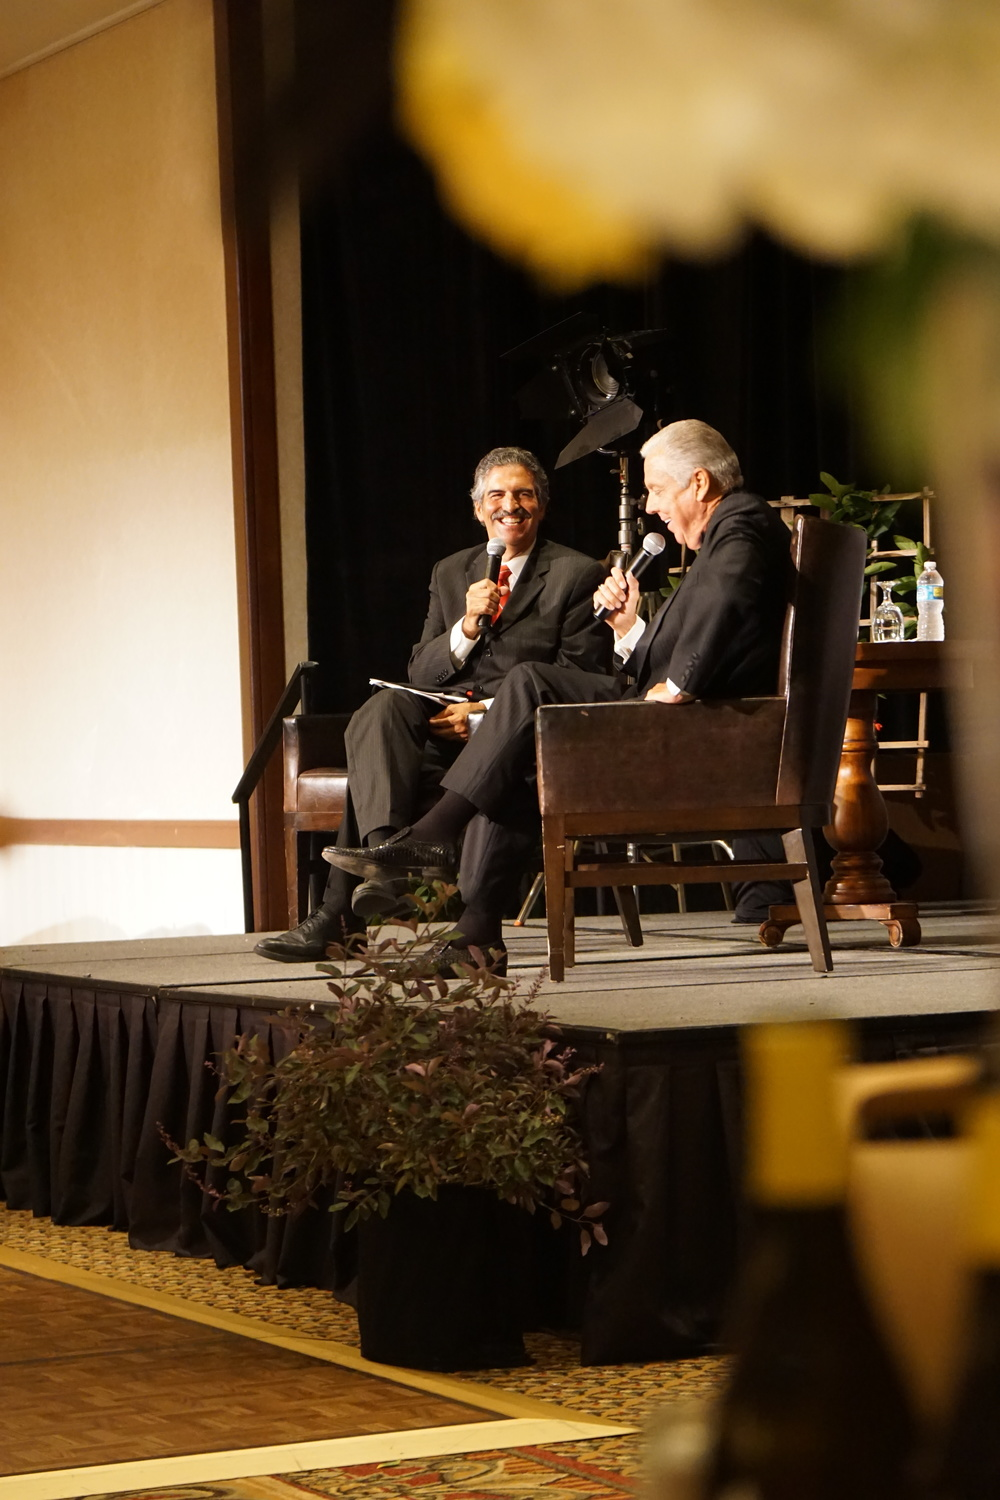 Newscaster John Palminteri interviewing Barry Meguiar during the Q & A session at gala event.